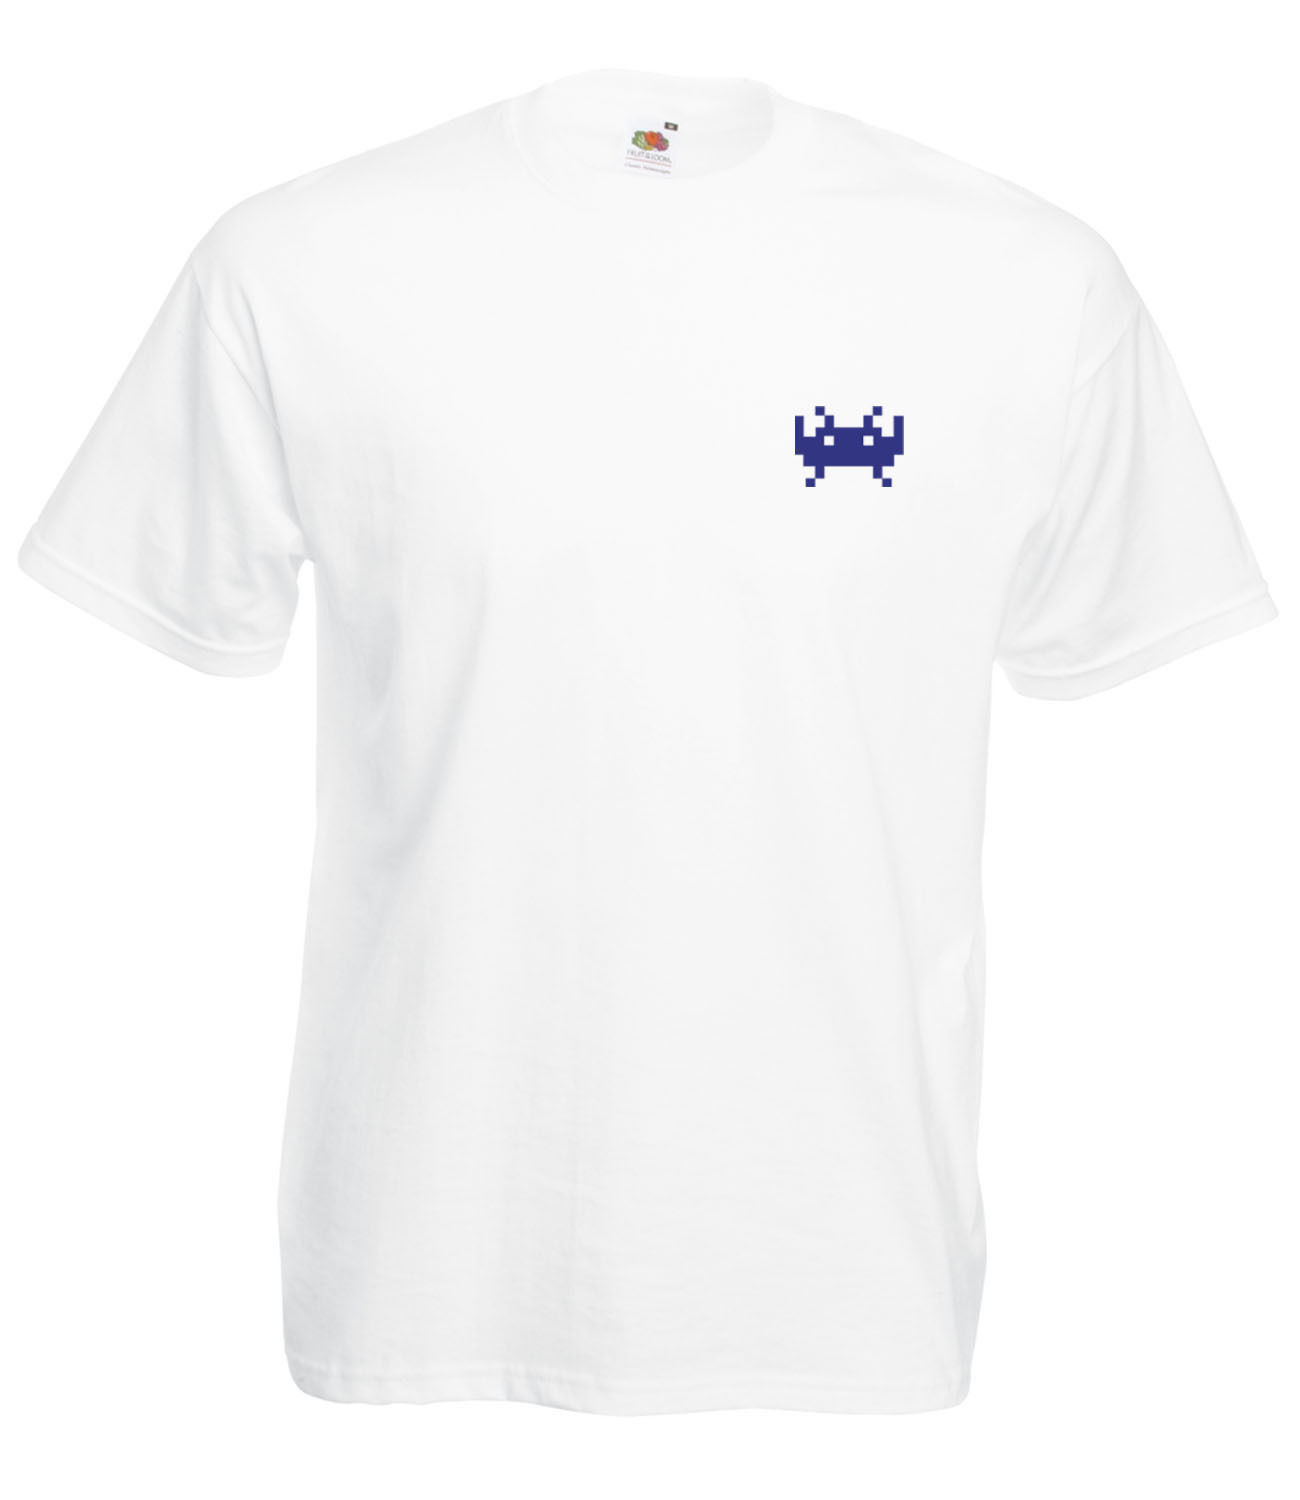 SPACE-INVADERS-INSPIRED-STYLE-GRAPHIC-HIGH-QUALITY-SHORT-SLEEVED-T-SHIRT